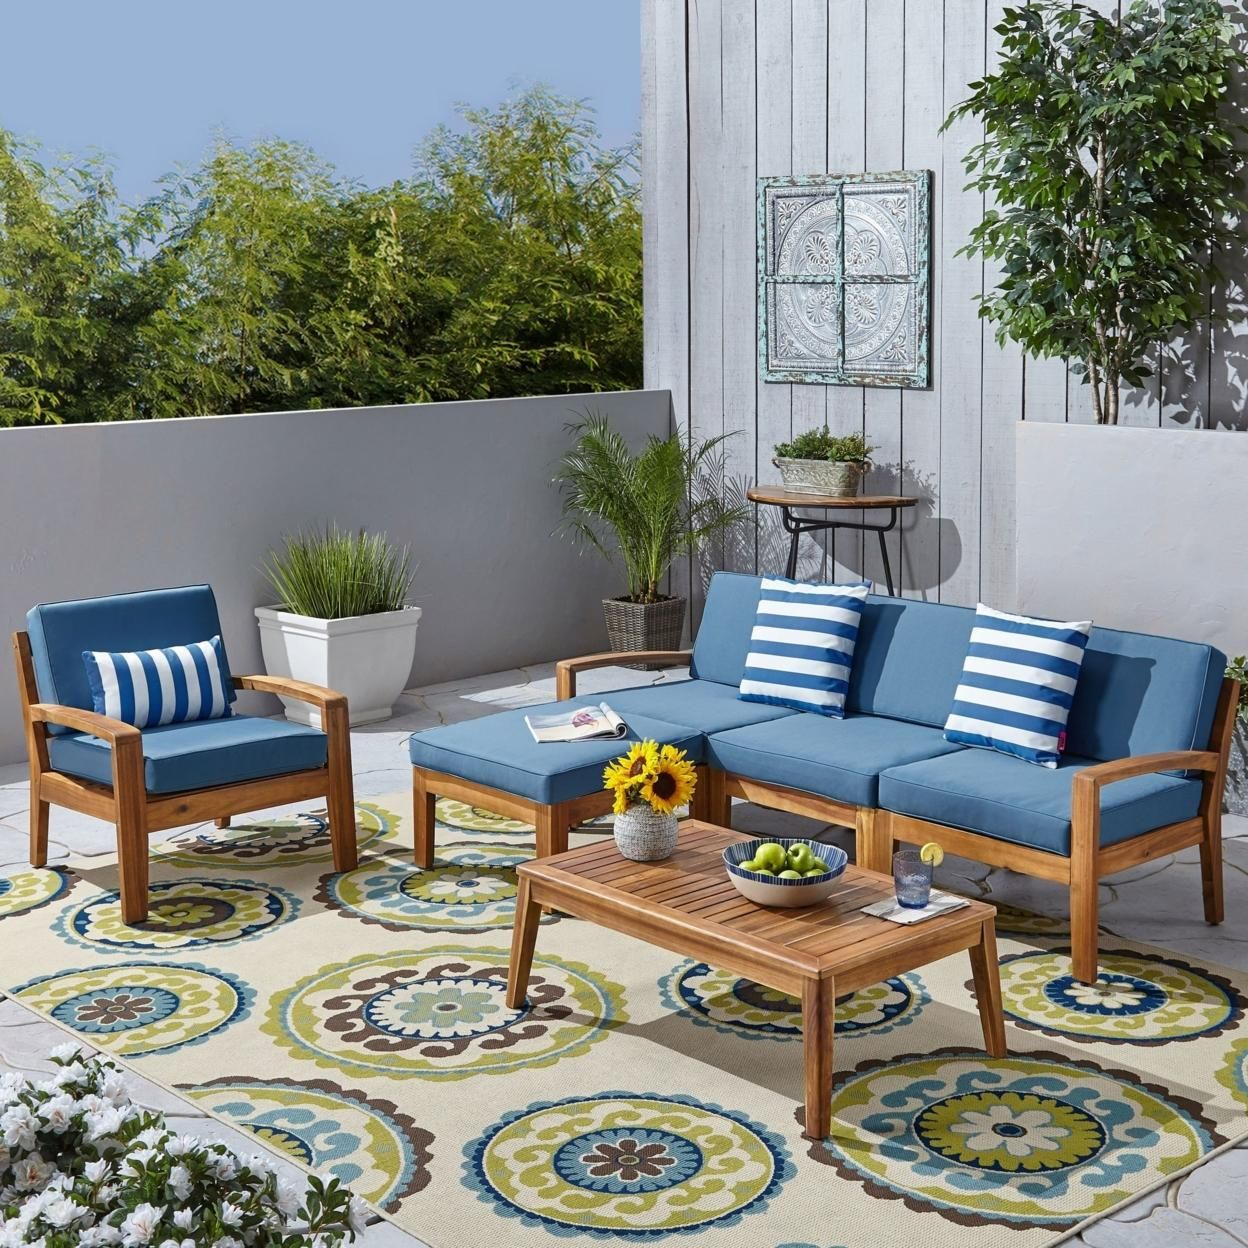 Parma 4-Seater Sectional Sofa Set For Patio with Club Chair